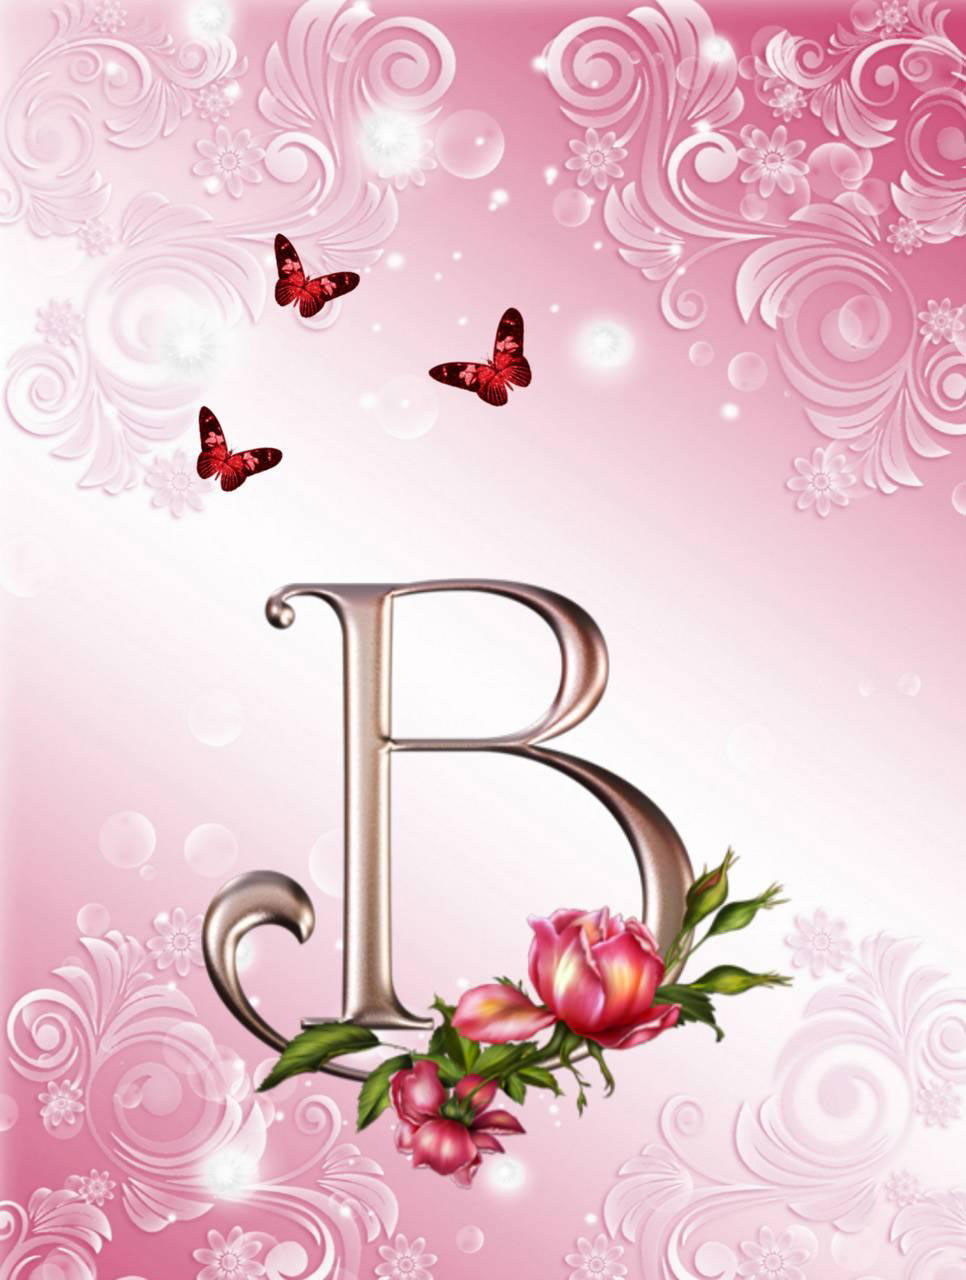 New B Name Dp Images pictures photo hd download